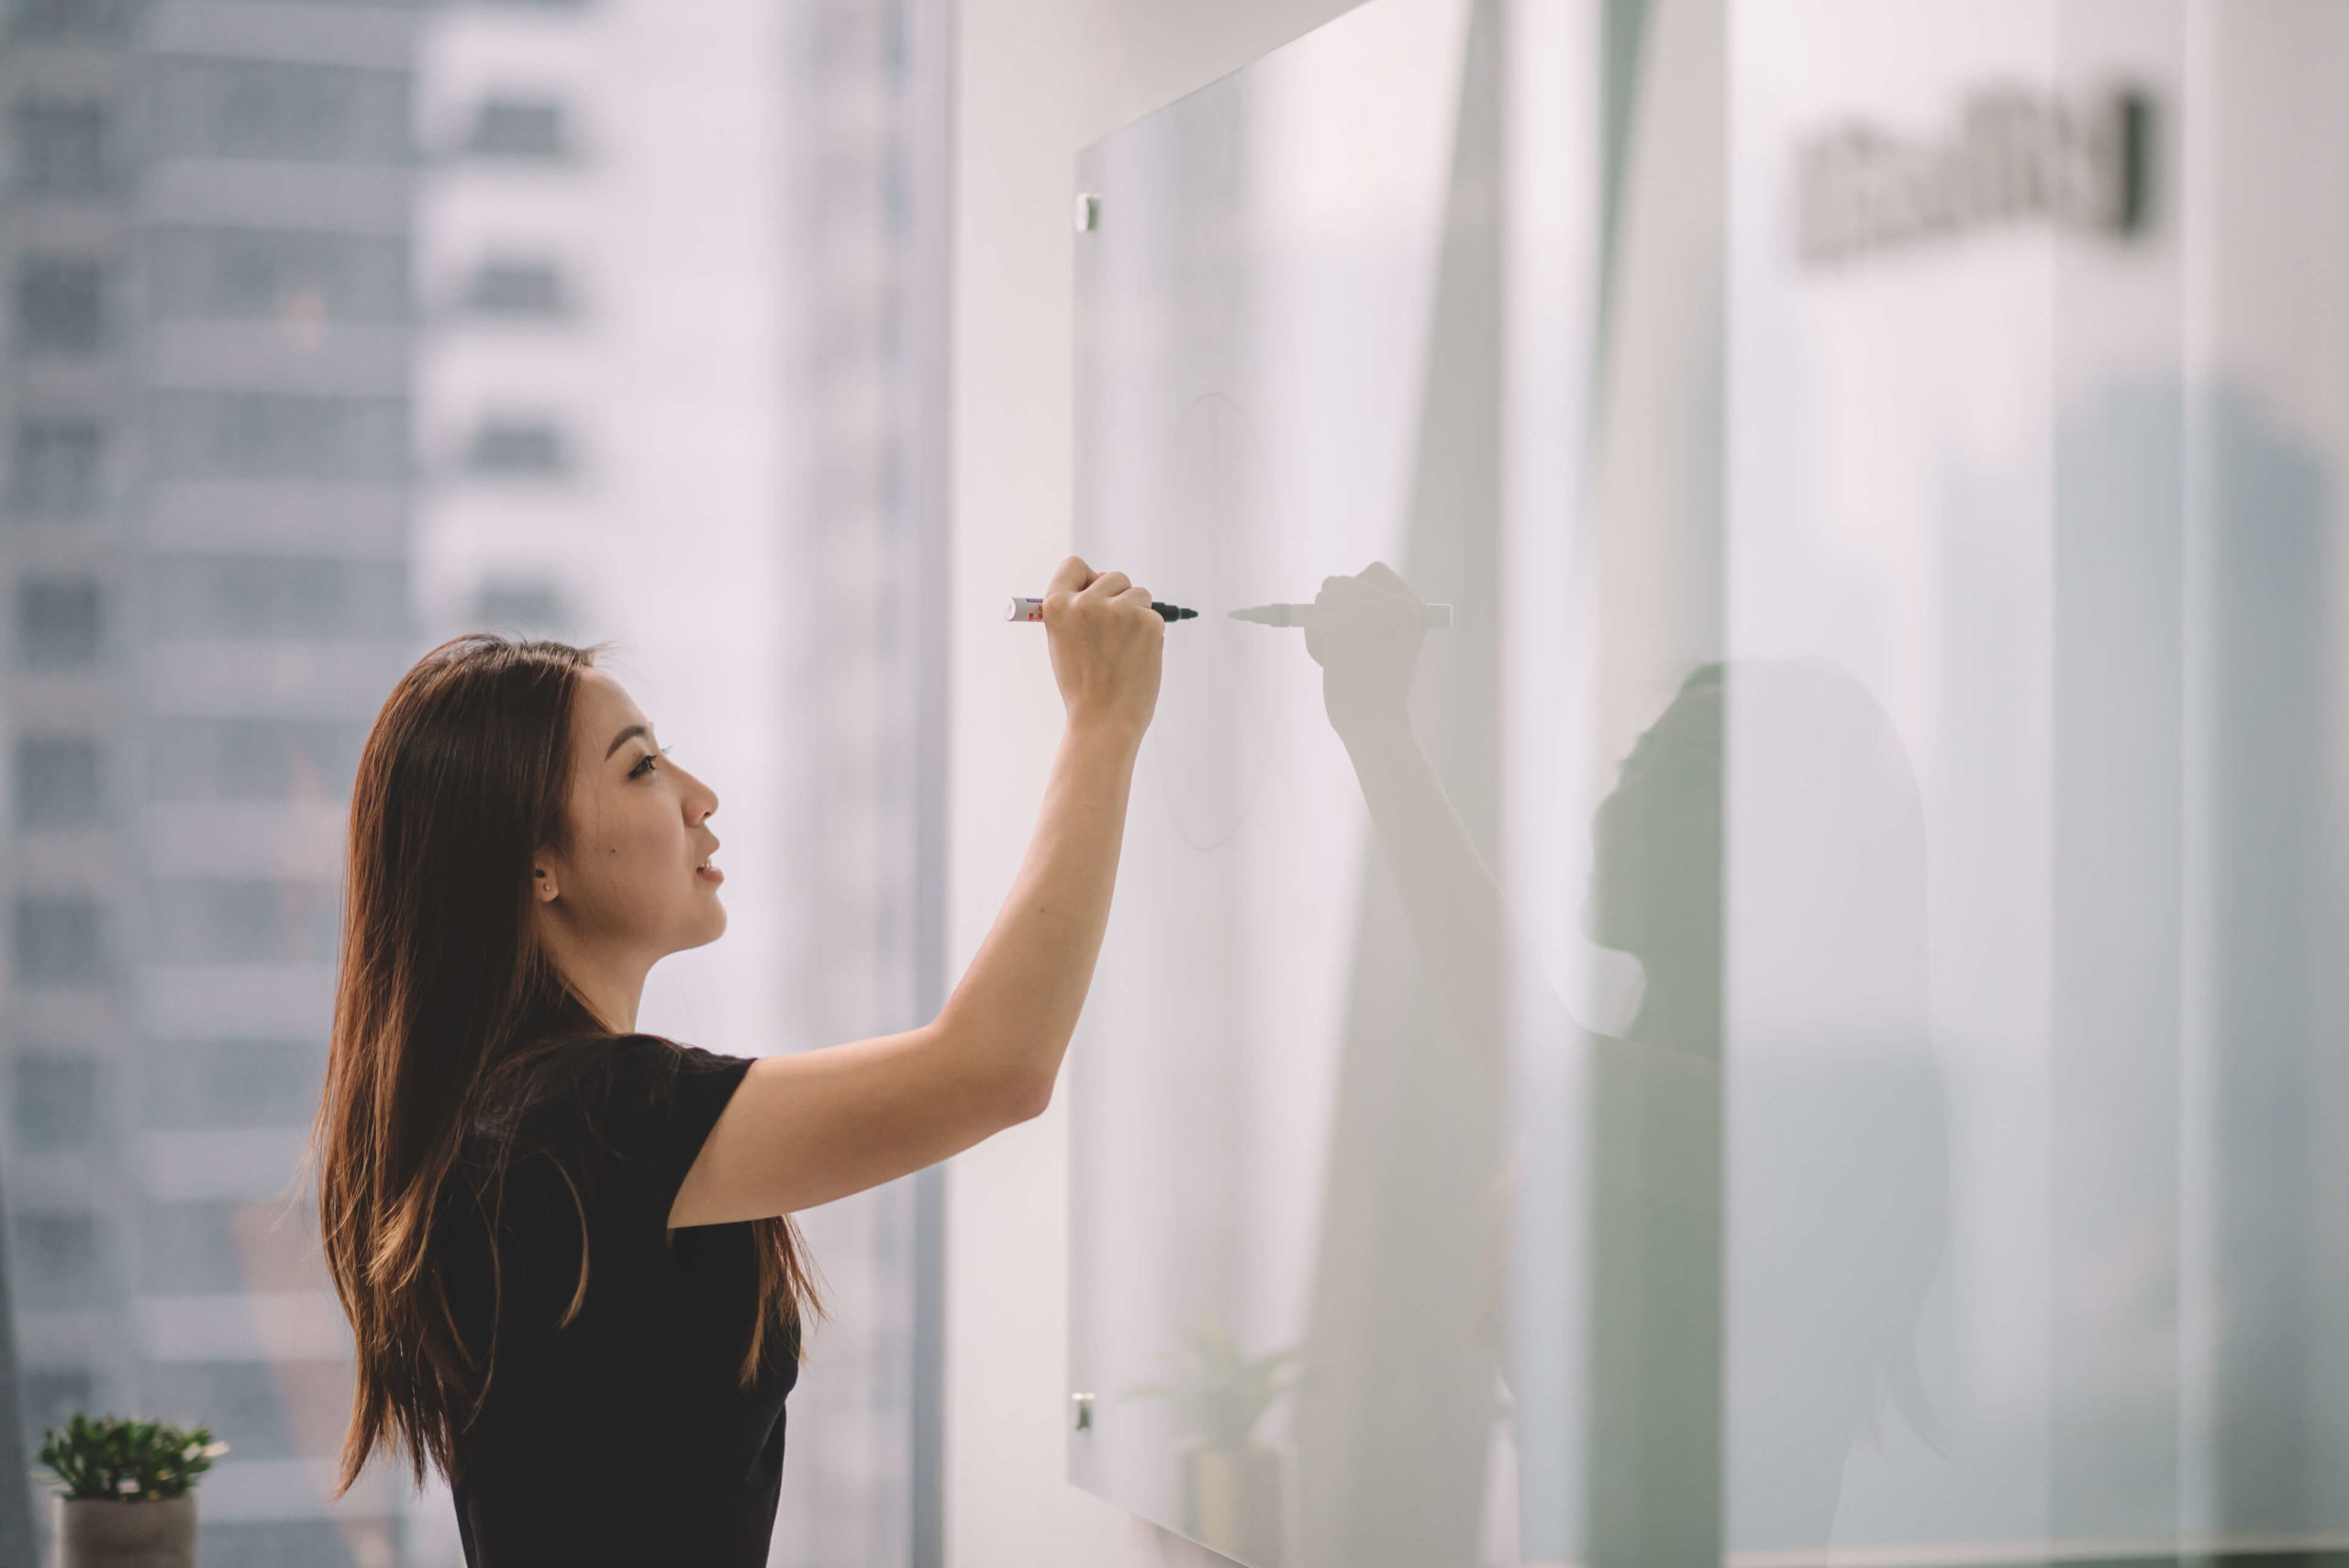 goal-setting in Japanese business